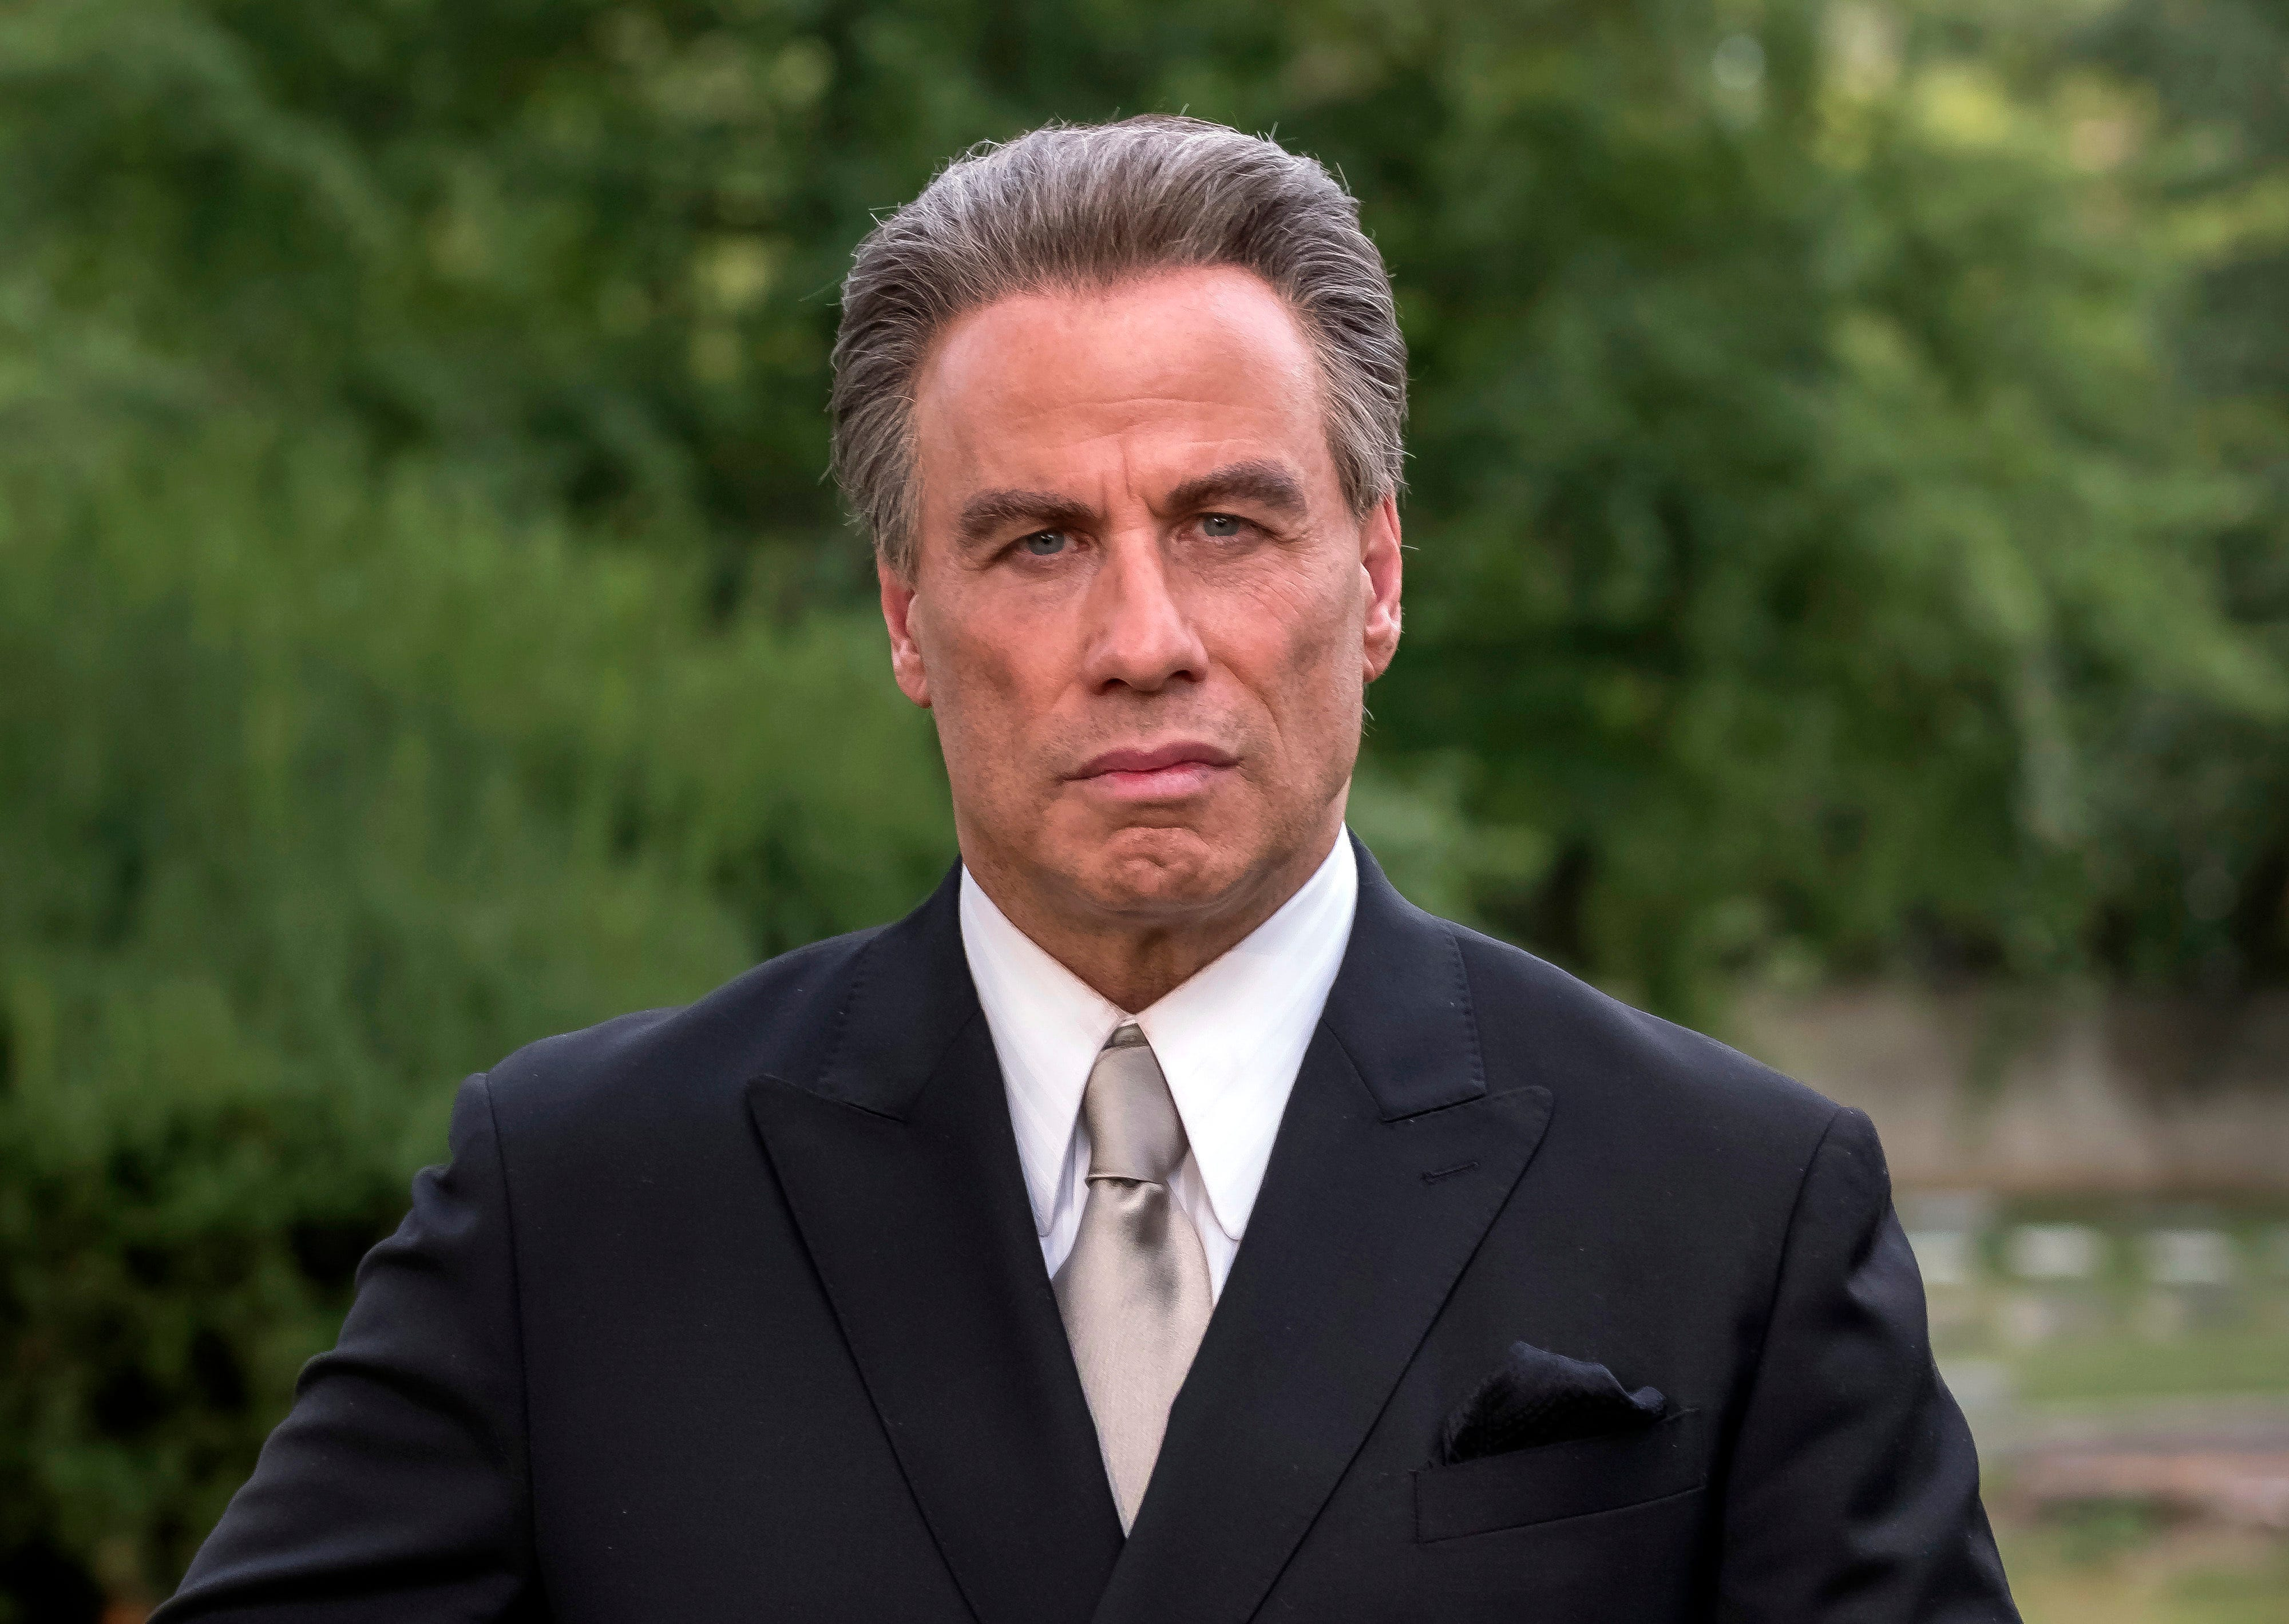 John Travolta stars as an infamous made man in 'Gotti' biopic